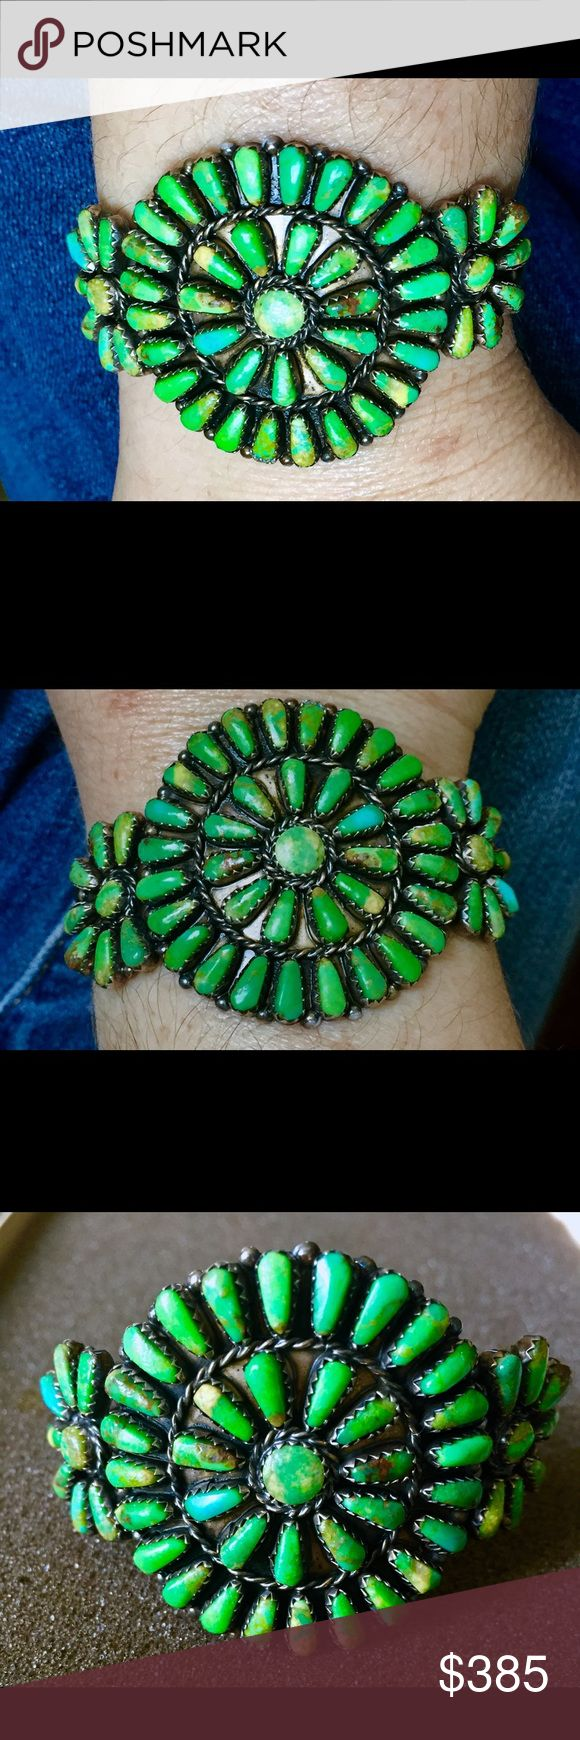 """💚Vintage Navajo Begay Turquoise Sterling Cuff💚 💚Vintage Begay Navajo Native American Green Turquoise Petit Point Cluster Cuff Bracelet💚 One of a kind, handcrafted beauty stamped sterling and hallmarked by Navajo silversmith Marc Begay with """"MB"""" Vintage Jewelry Bracelets"""